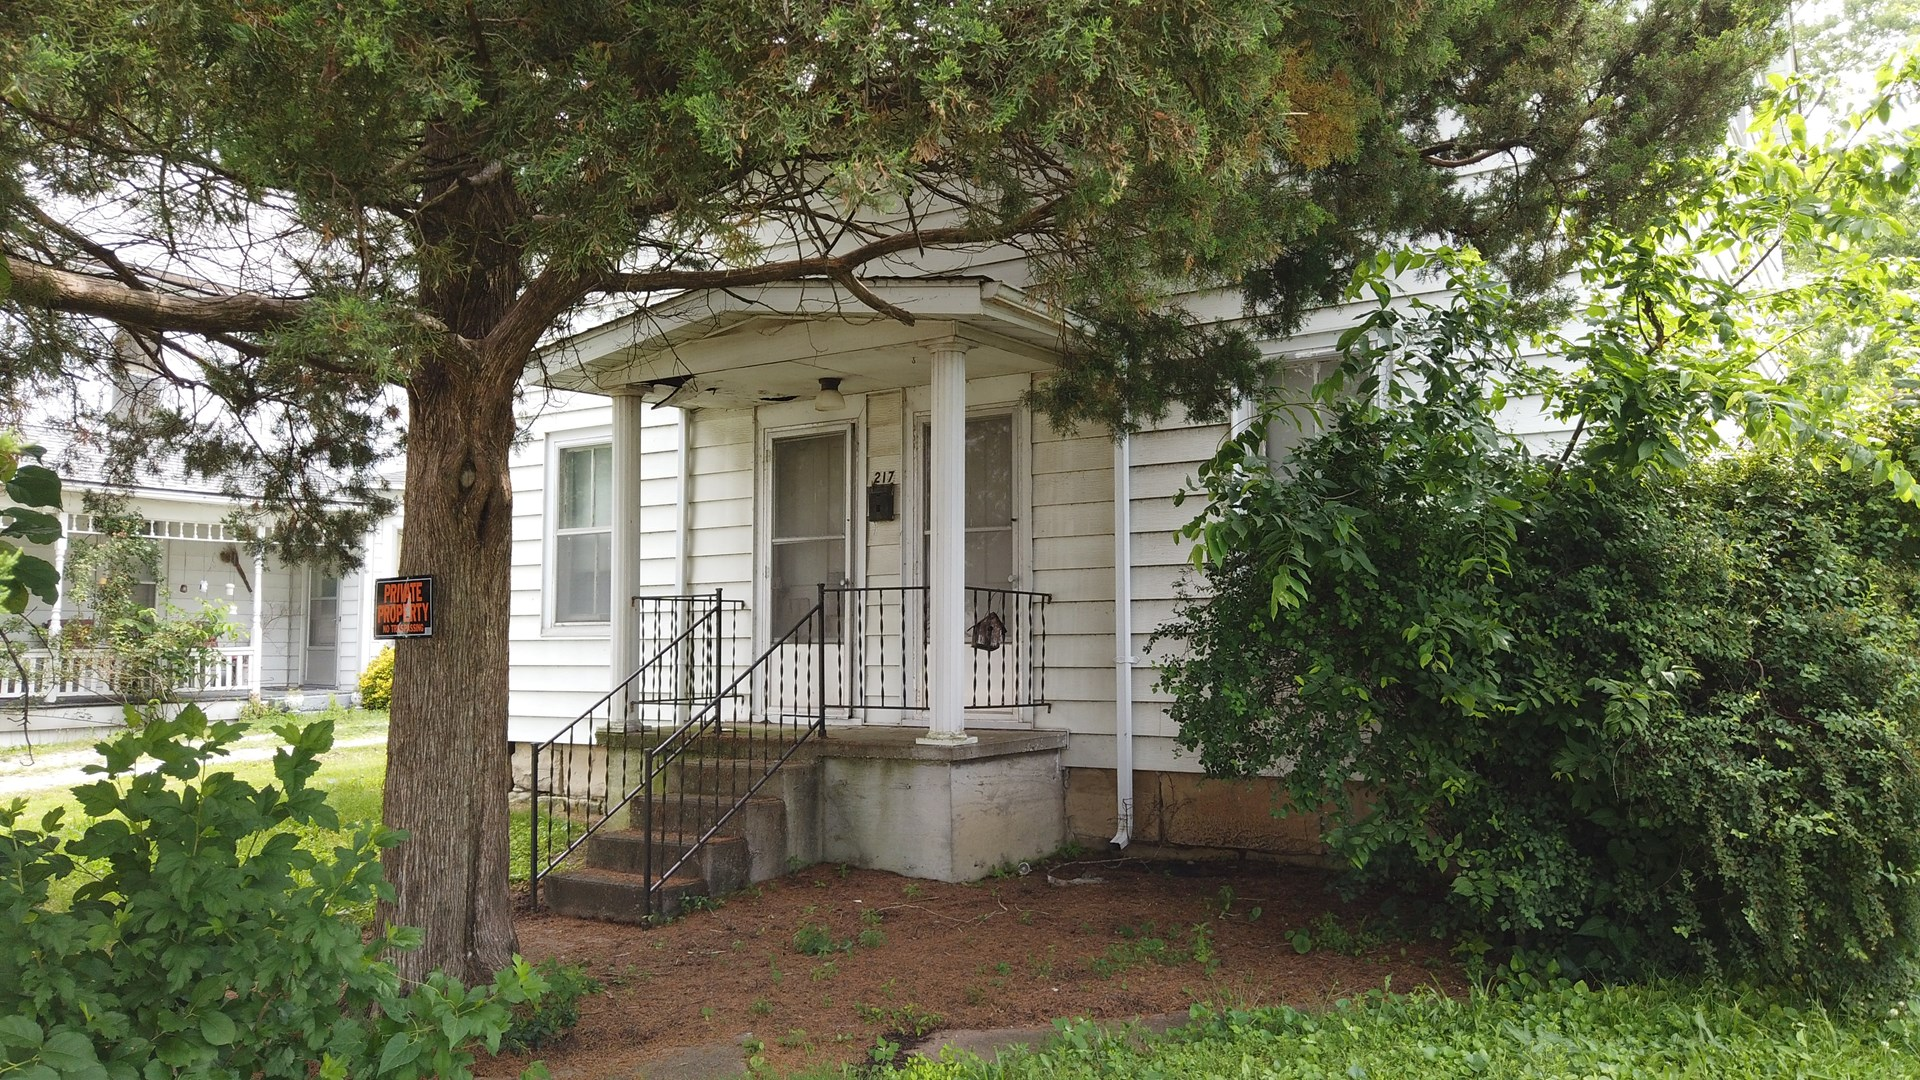 3 BR, 1 Ba House For Sale in Perryville, Mo.